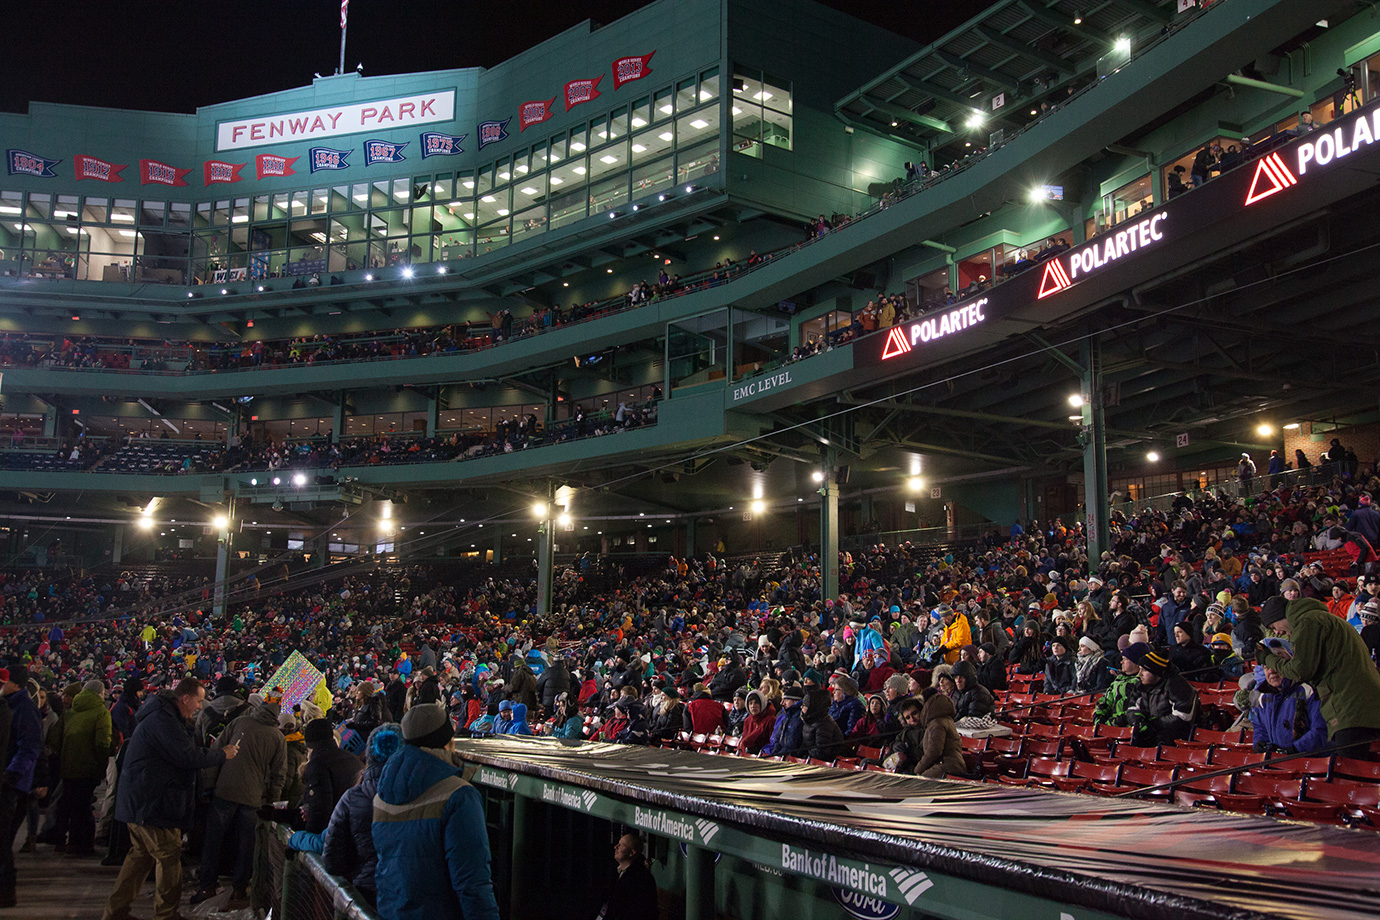 The crowd at Fenway Park grows even larger for the freeskiing competition on Day 2.